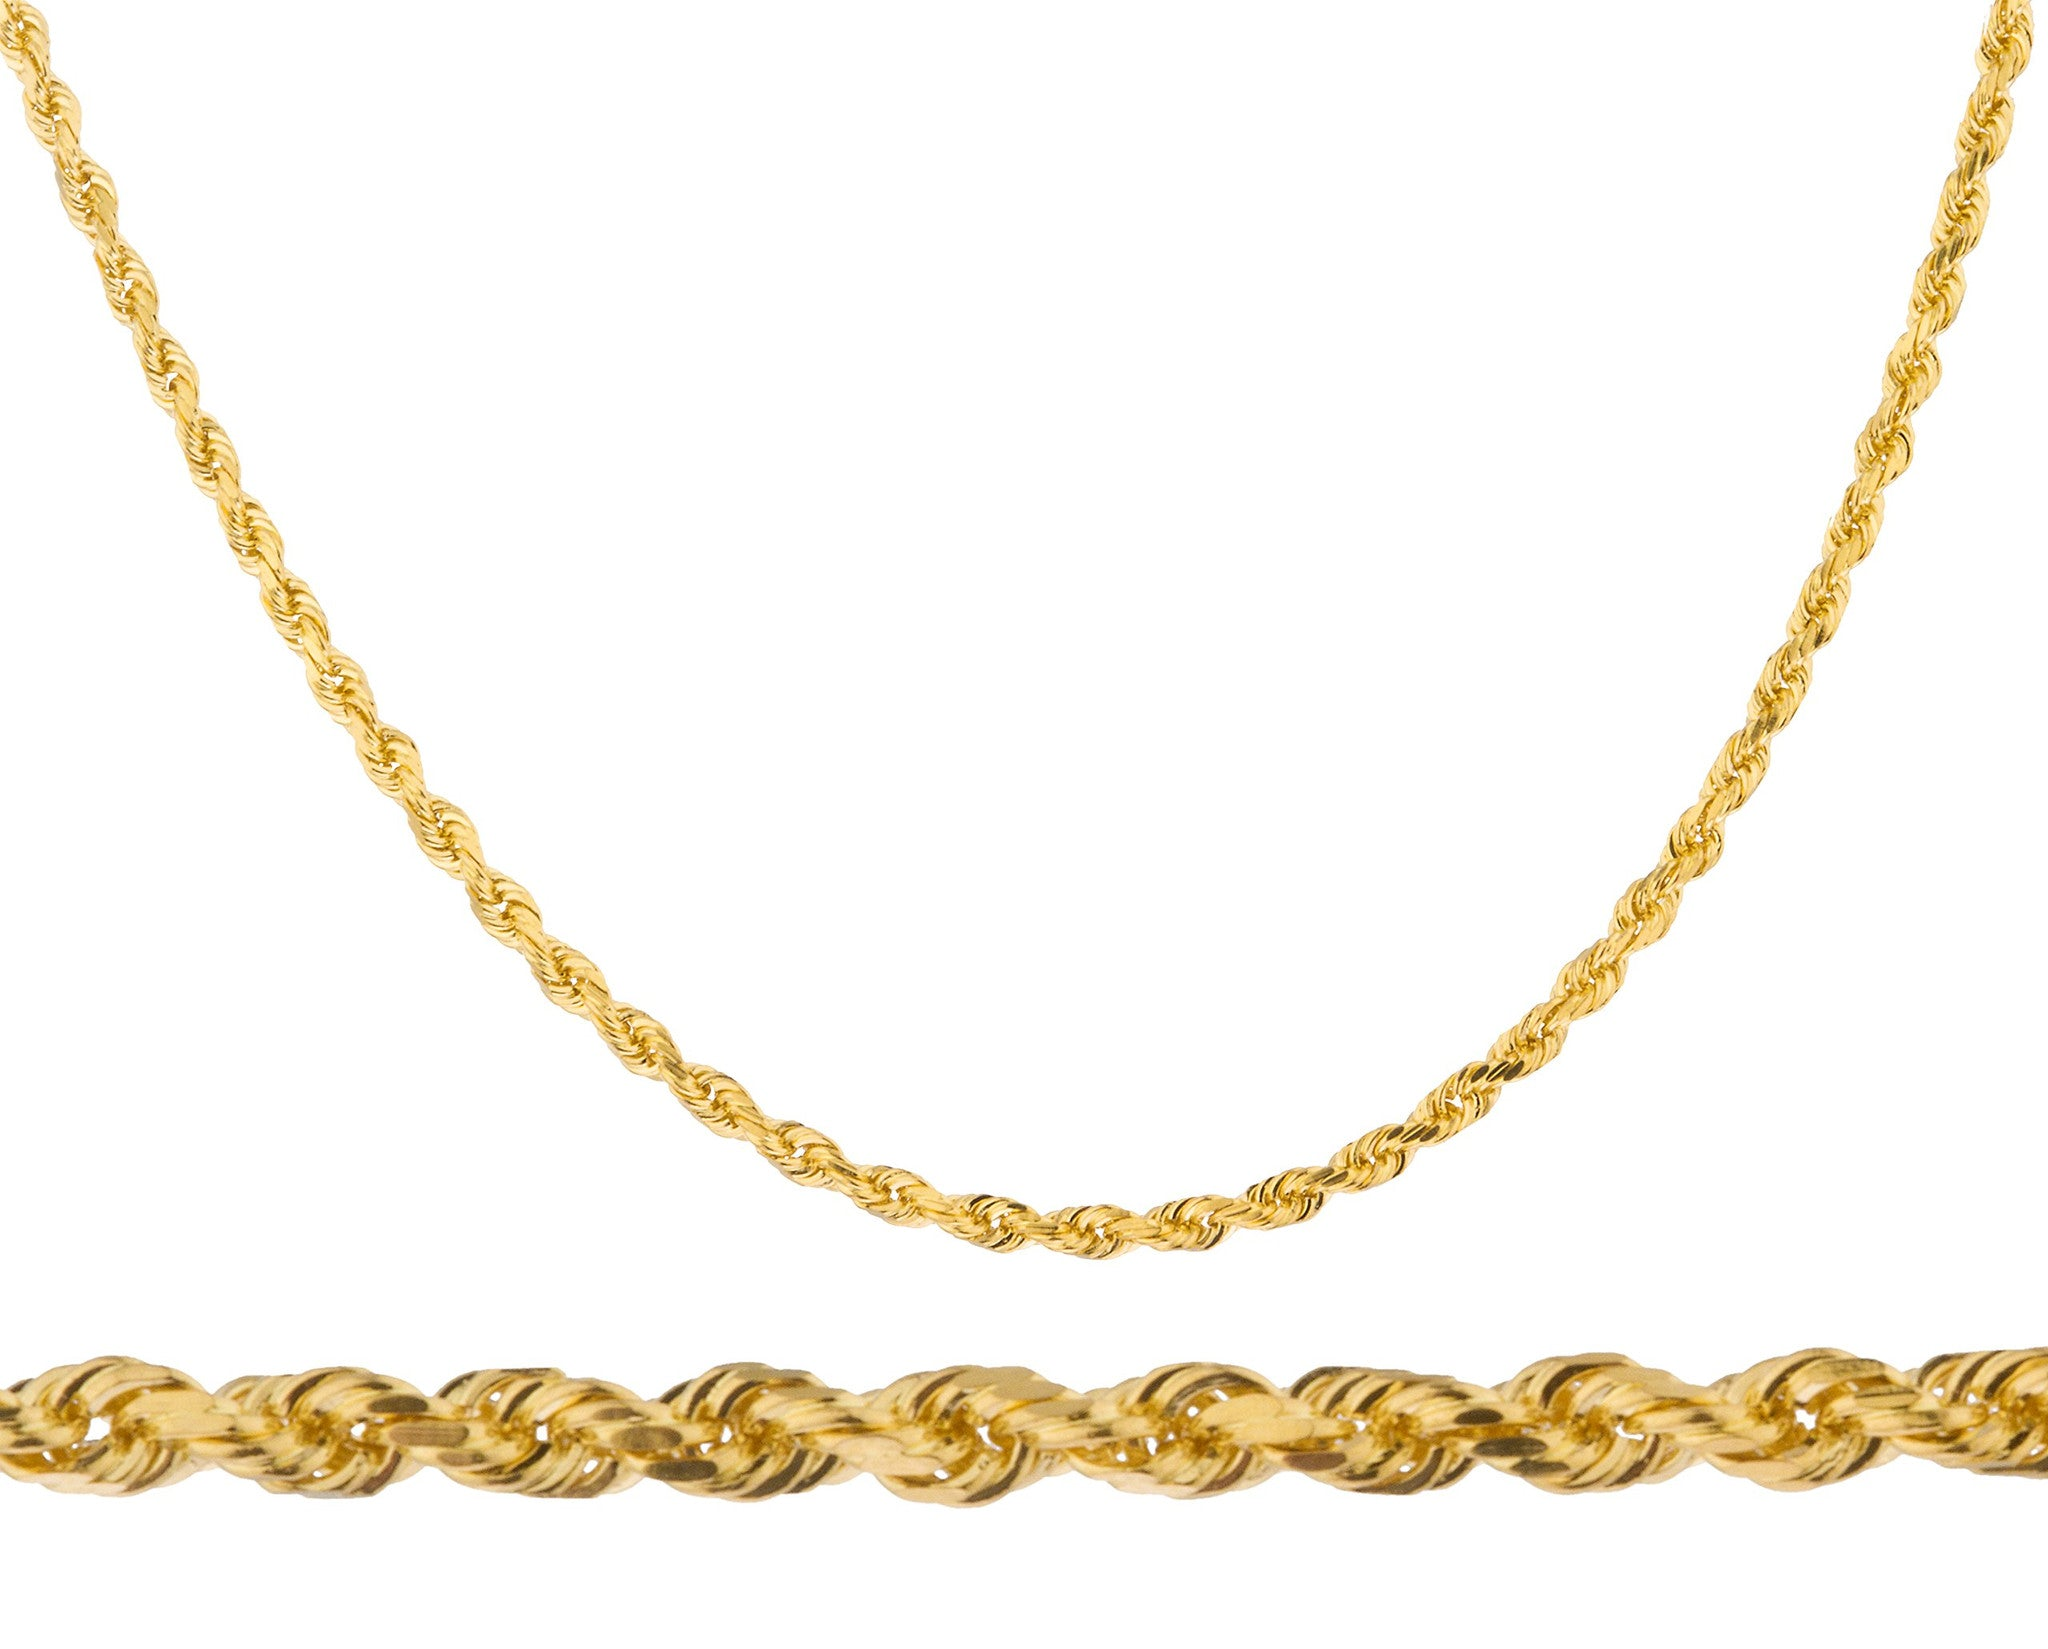 14e2ee87739ab 14K Yellow Gold Heavy 3mm Solid D-cut Rope Chain Necklace 18-30inch